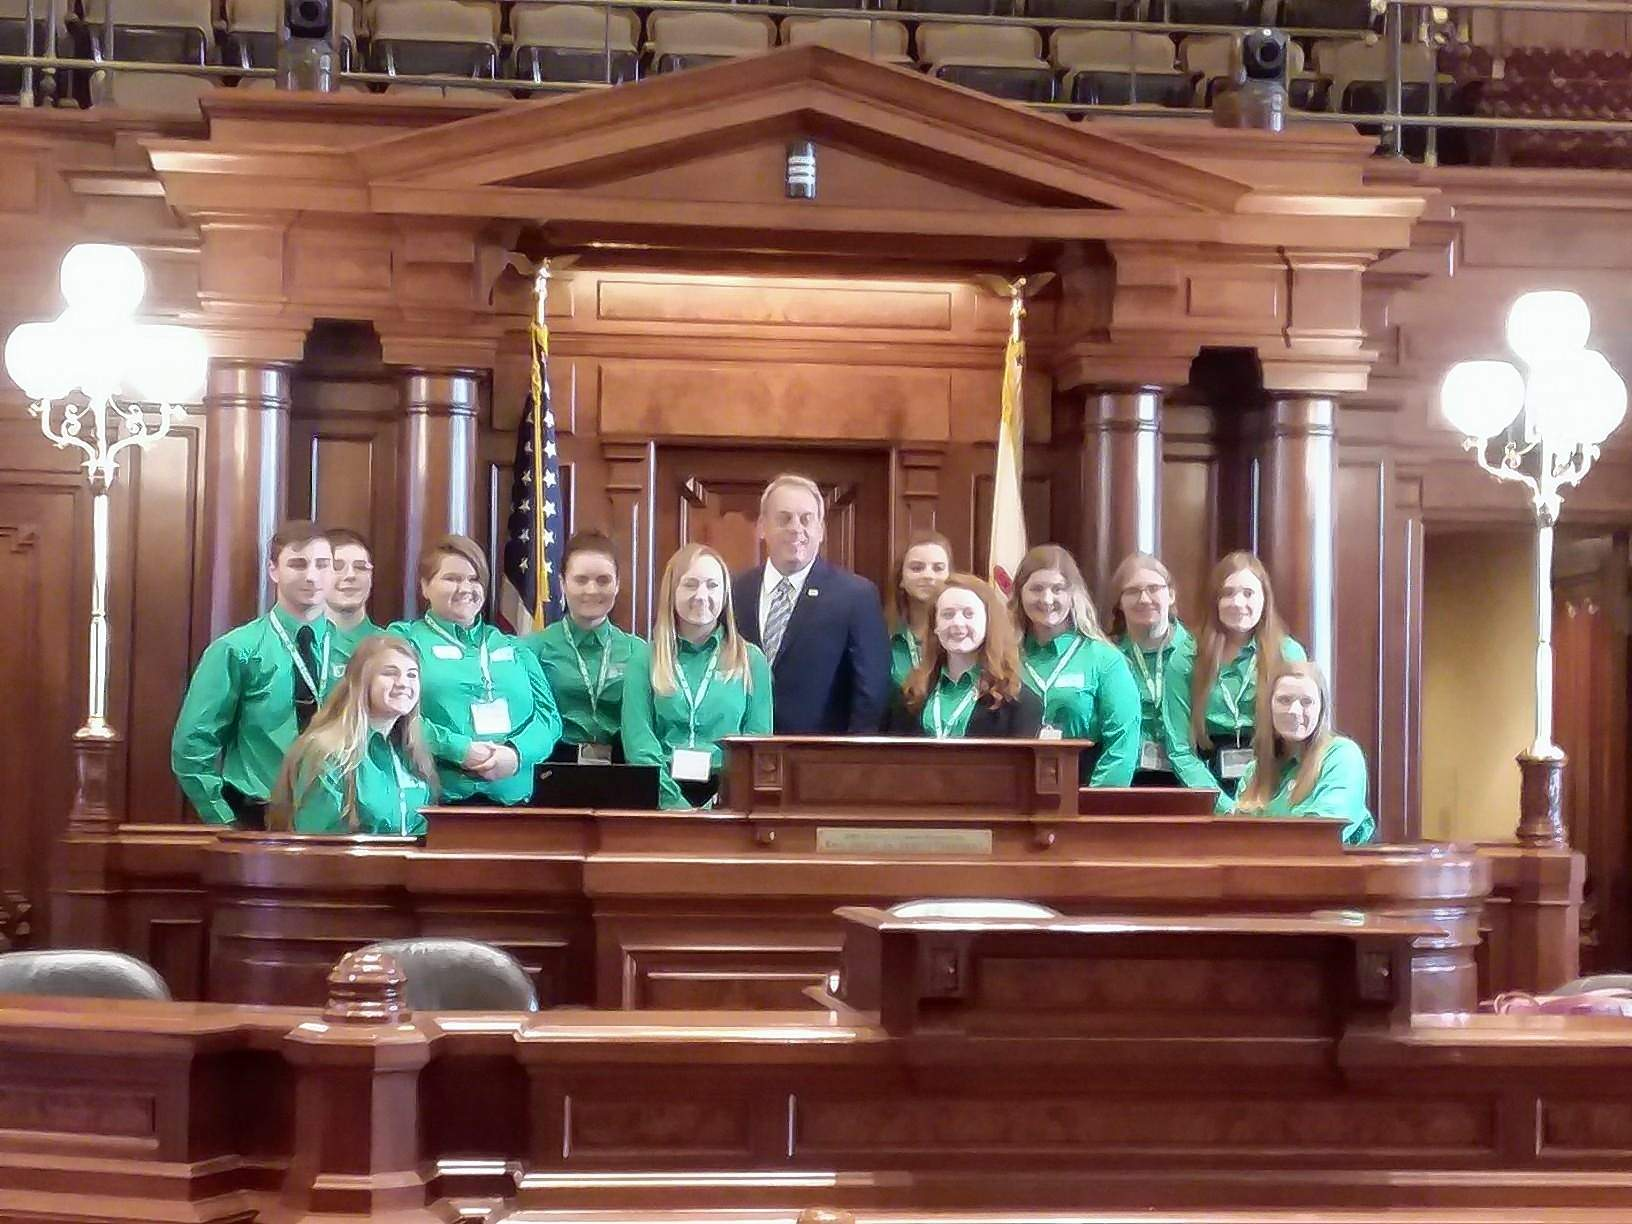 Saline County 4-H members Chloe Hopkins and Christian Jean join 4-H members from across the state at our State Capitol in Springfield for Legislative Connection. 4-H youth attend face-to-face and web trainings to be certified in Speaking for Illinois 4-H prior to their capitol visit.  Pictured are Senator Dale Fowler with 4-H members from his district.